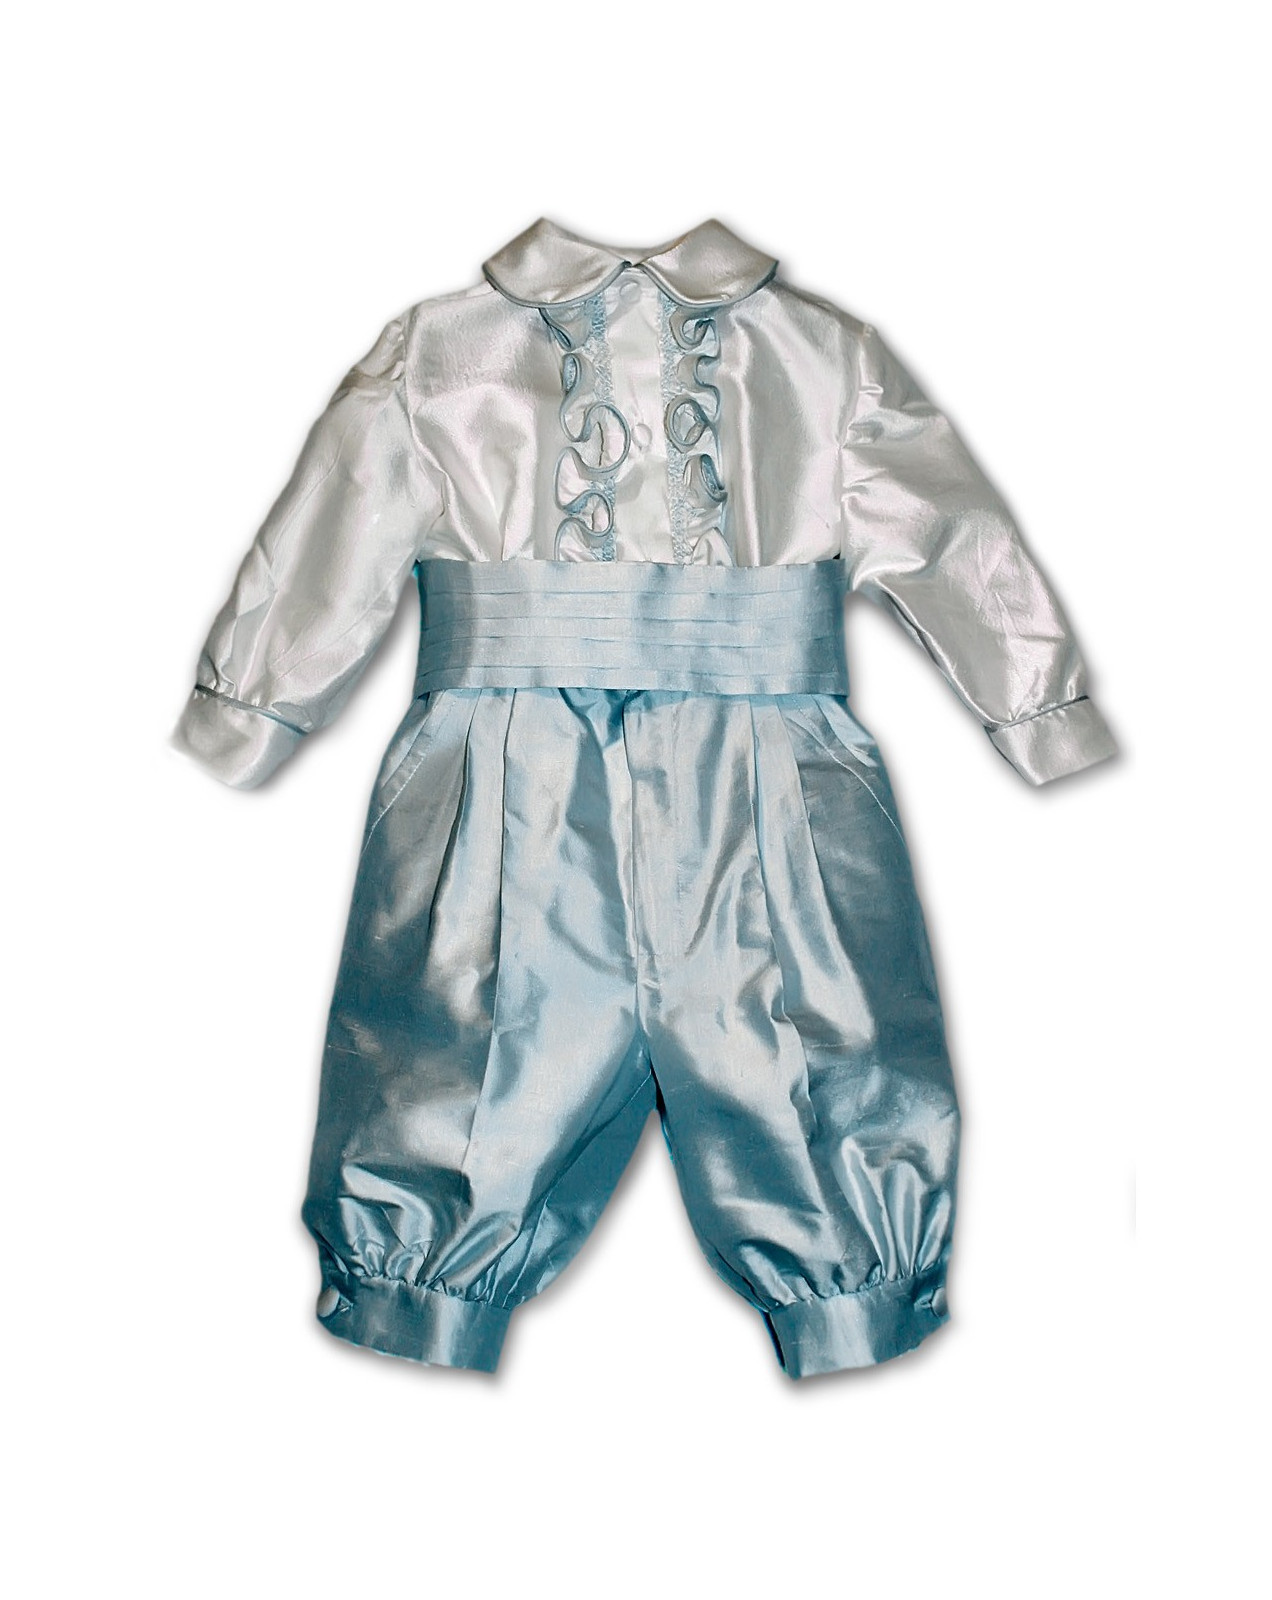 ARNO baby boy luxury outfit, christening and page boy